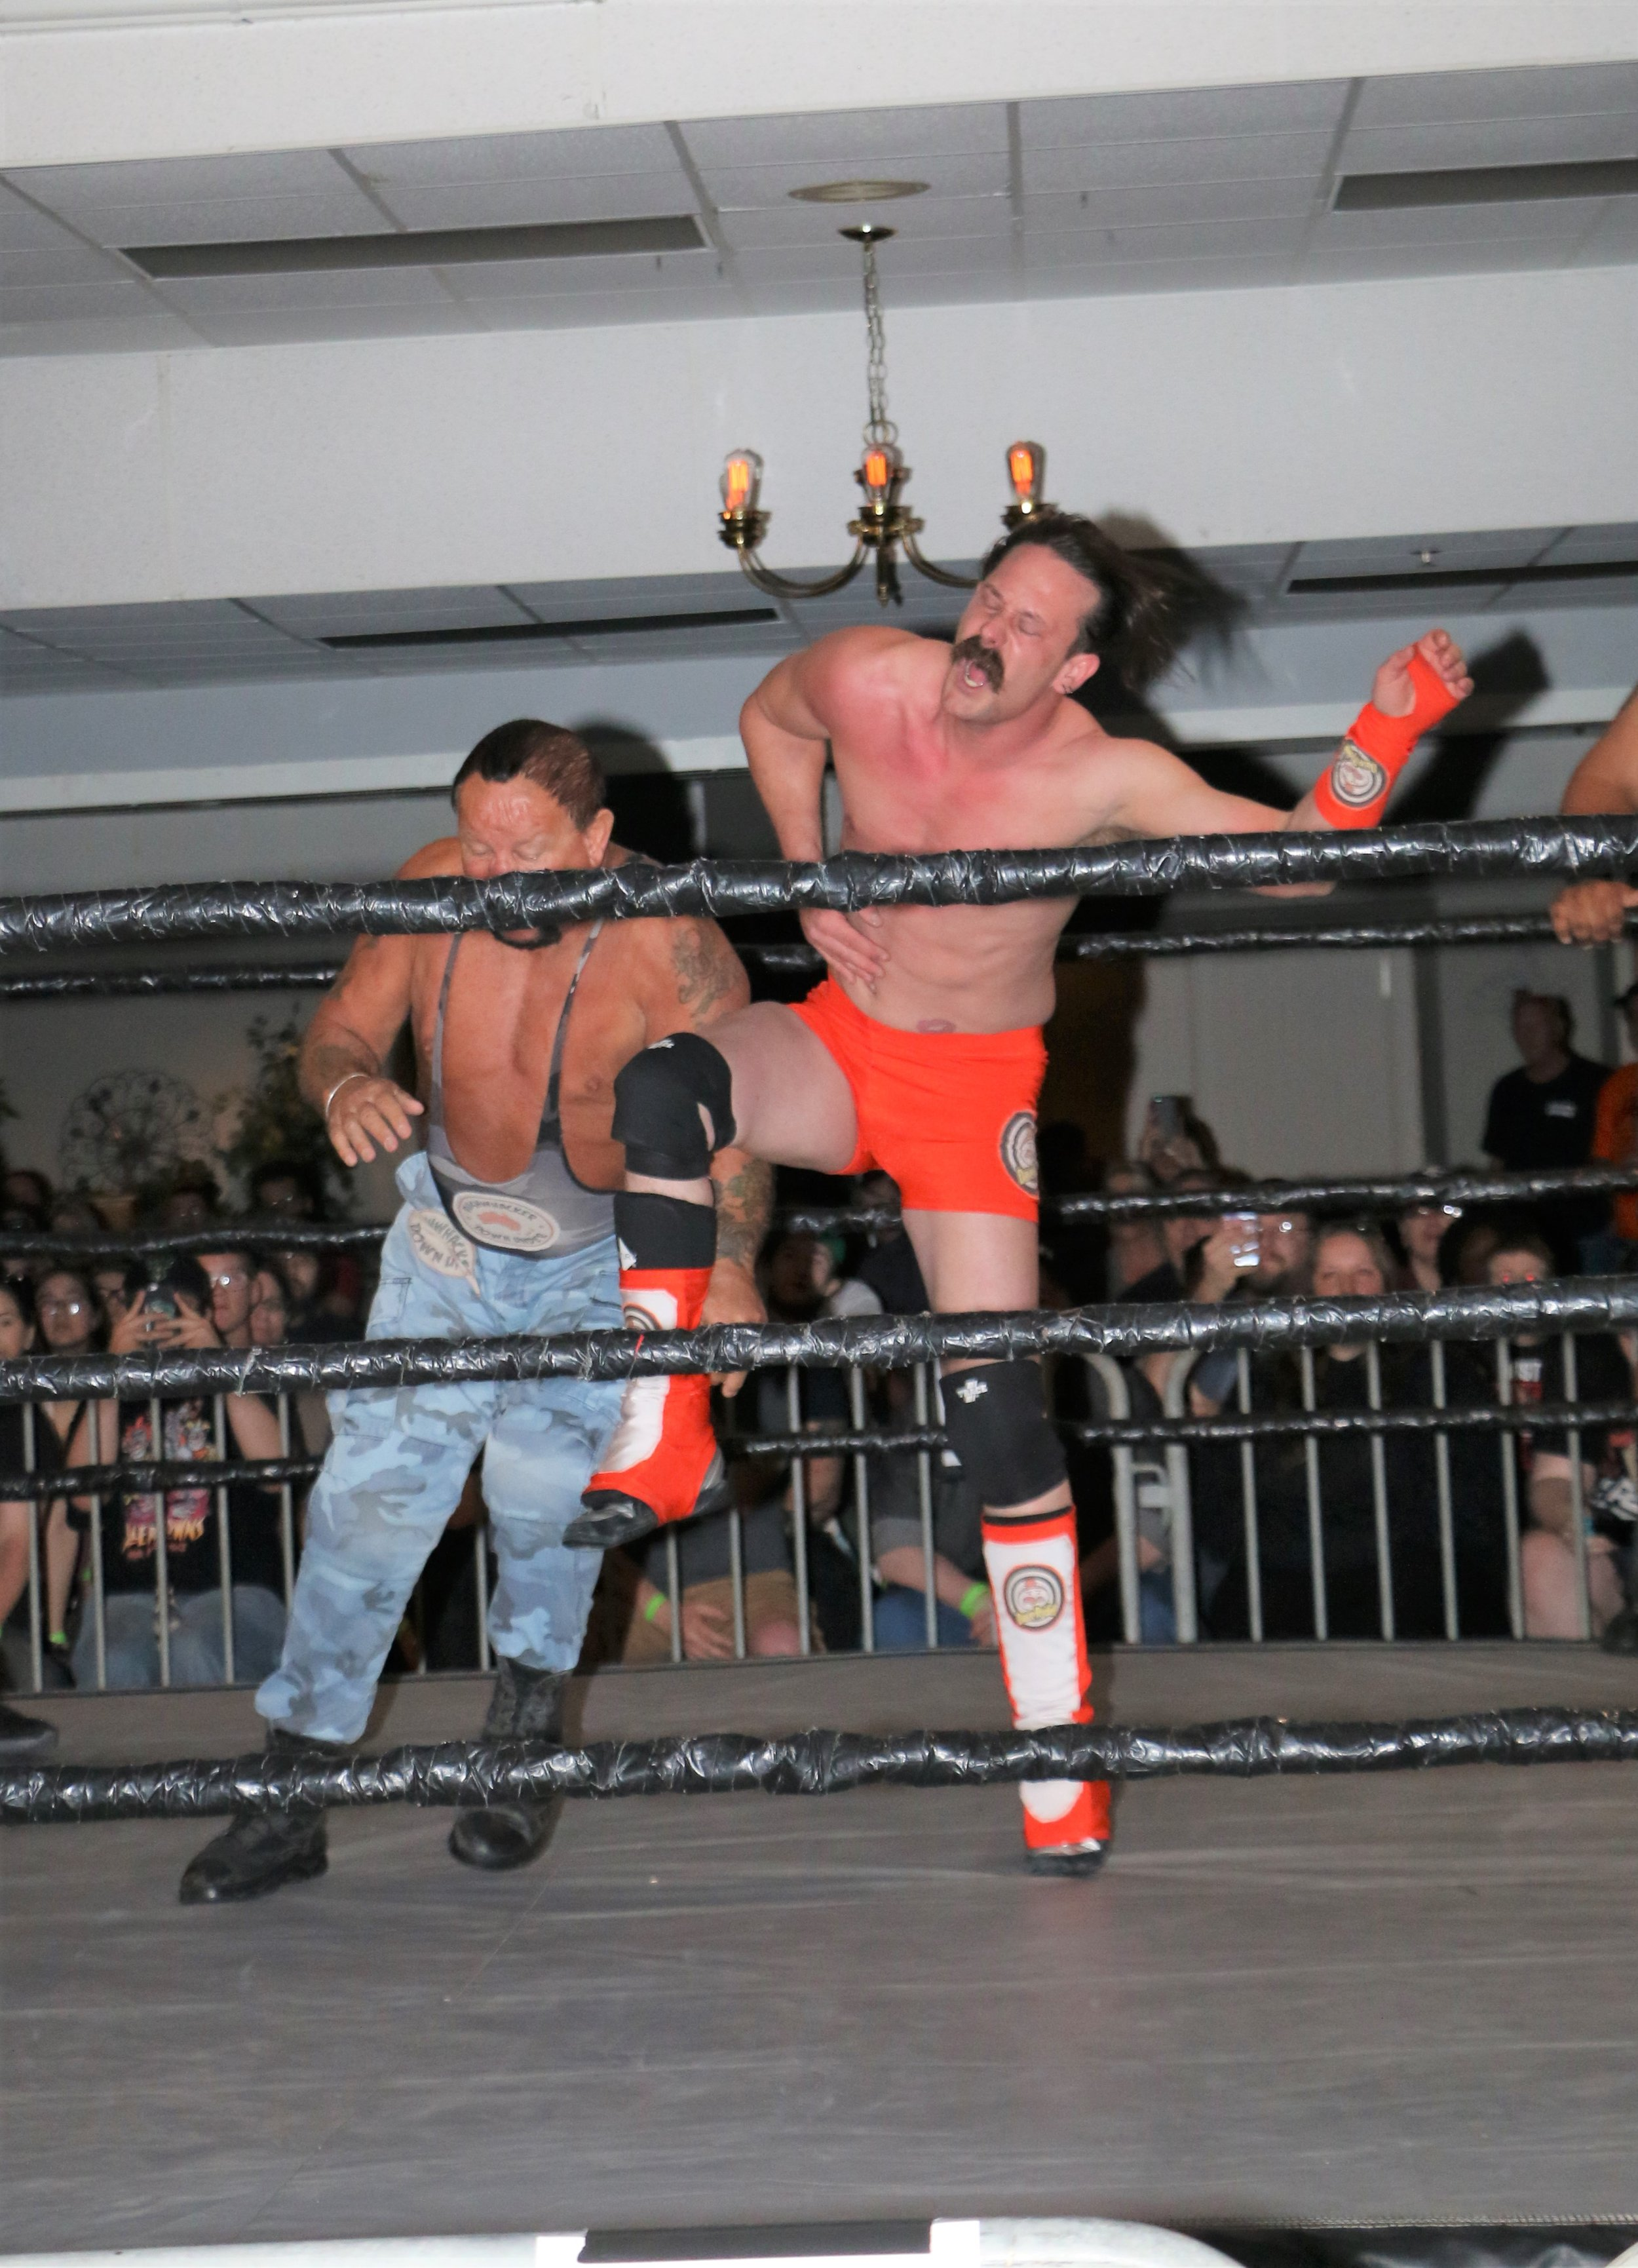 Bushwhacker Luke, left, and Dave Rydell sqaure off during the six-man tag team match.